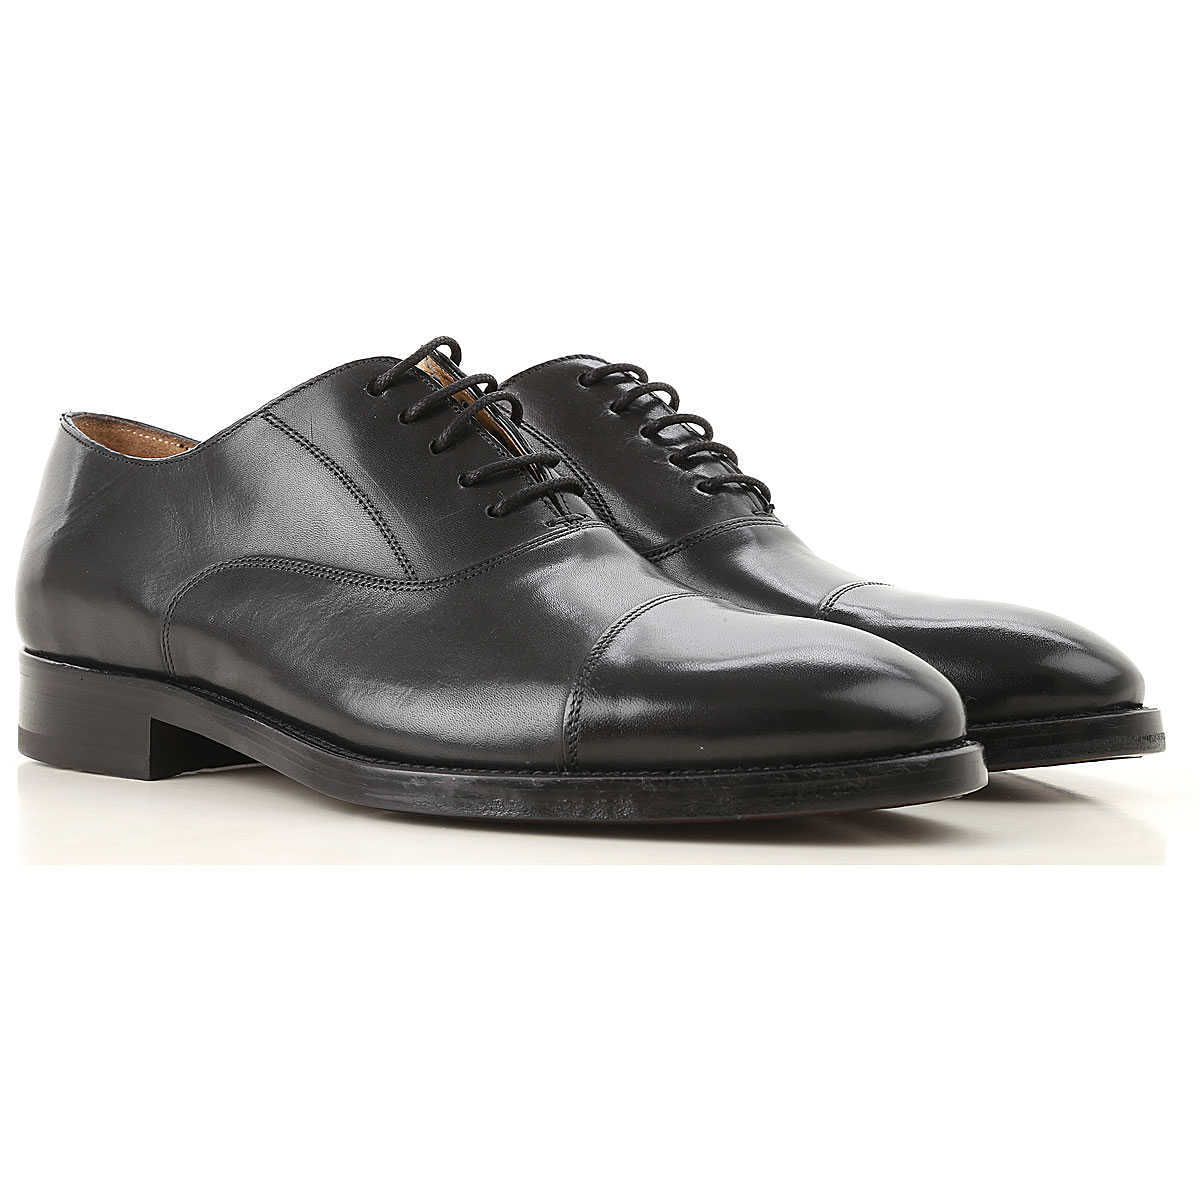 Brecos Lace Up Shoes for Men Oxfords Derbies and Brogues On Sale - GOOFASH